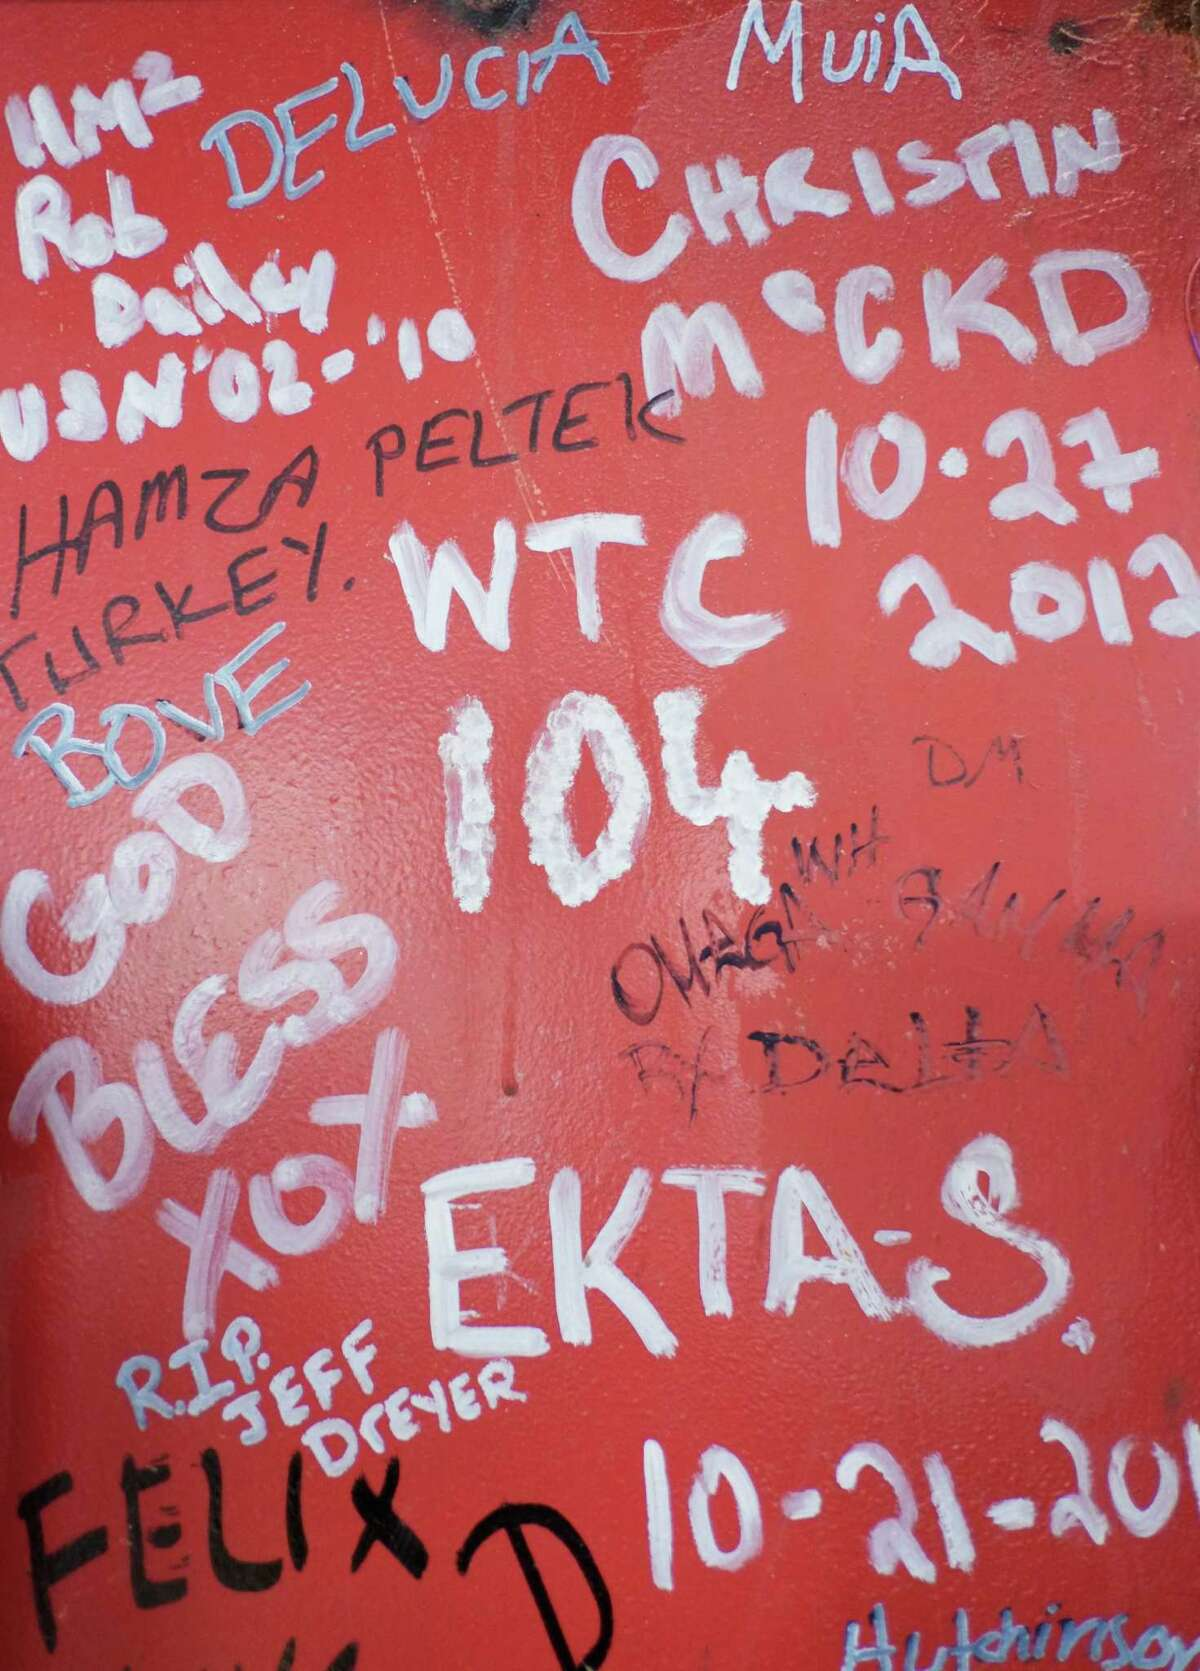 This Jan. 15, 2013 photo shows graffiti left by workers on a steel column on the 104th floor of One World Trade Center in New York. Construction workers finishing New York's tallest building at the World Trade Center are leaving their personal marks on the concrete and steel in the form of graffiti.